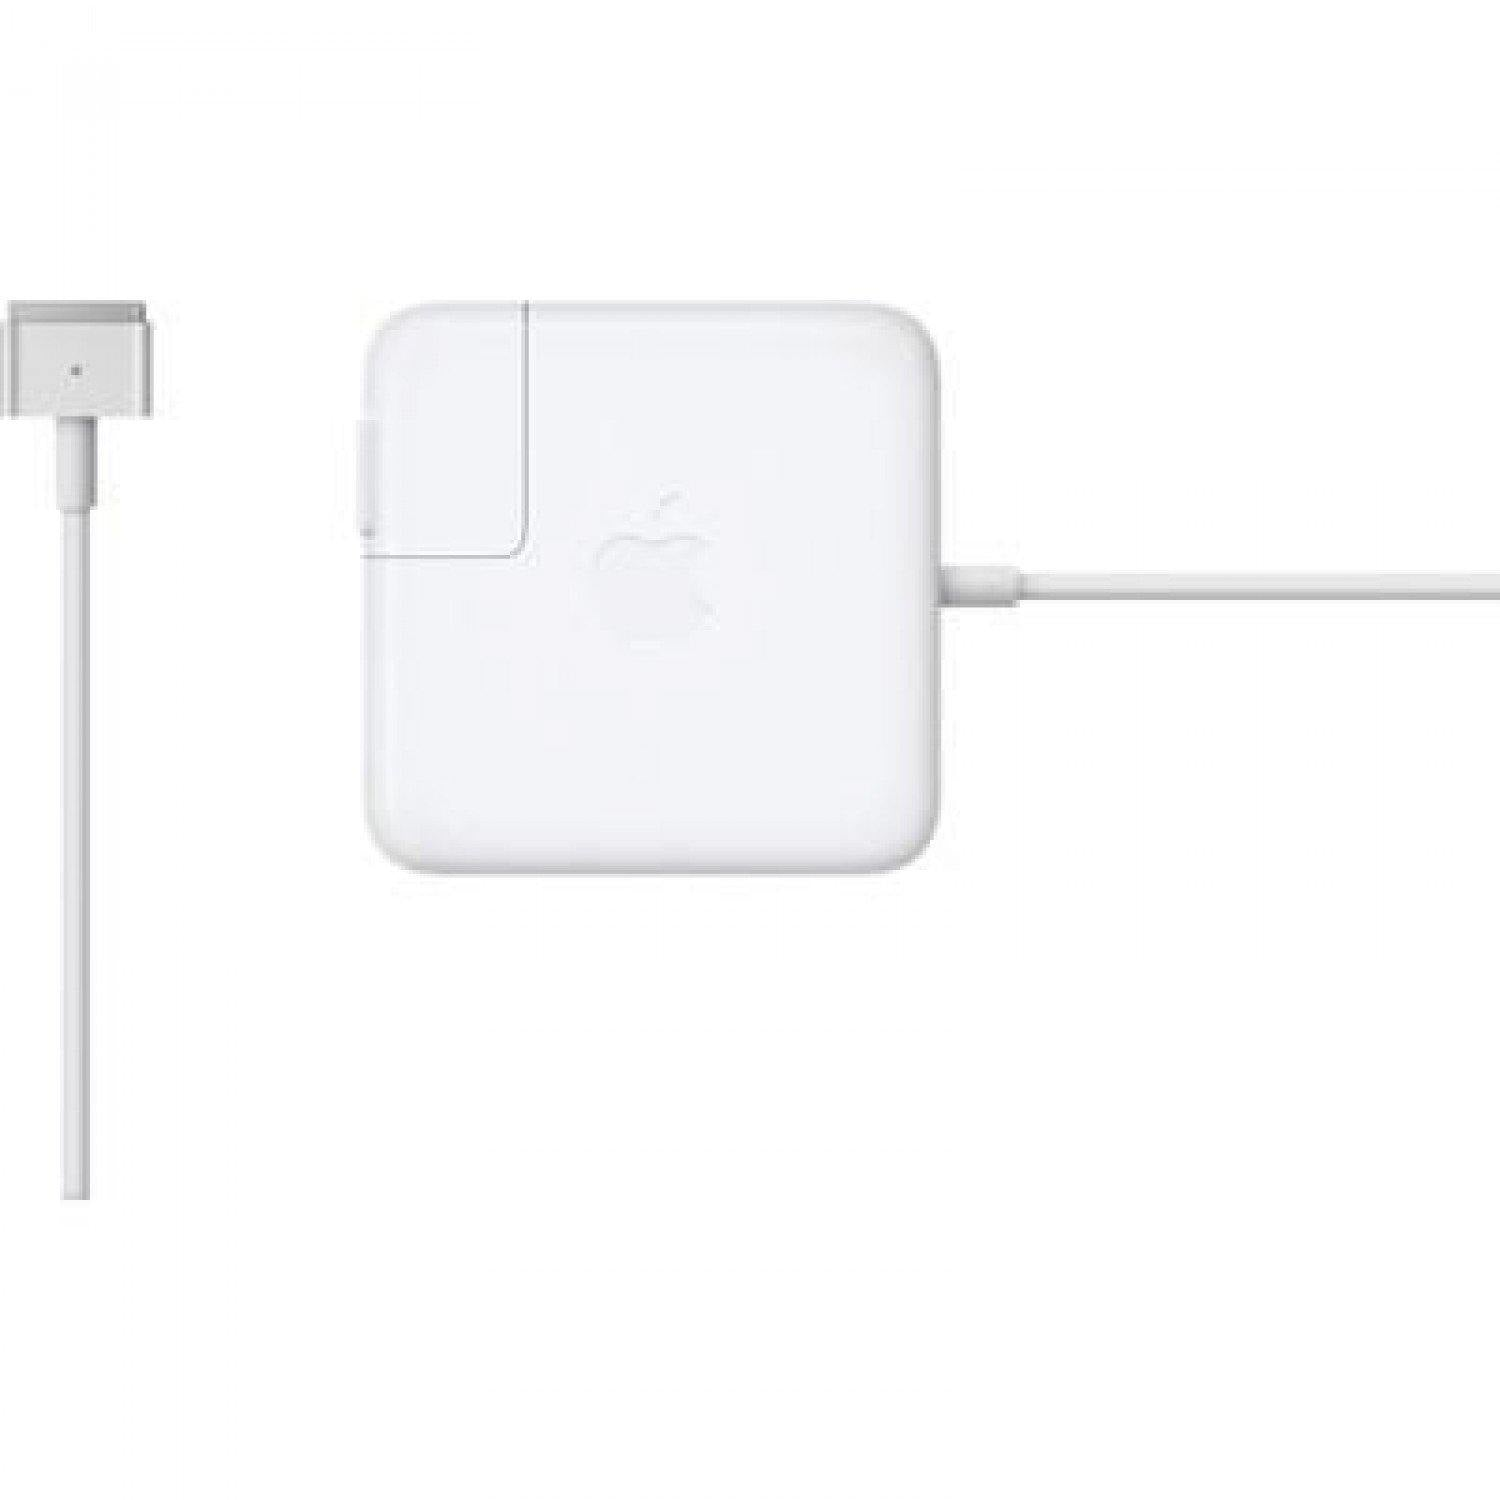 MagSafe 2 Power Charger Adapter for Apple MacBook - 85W